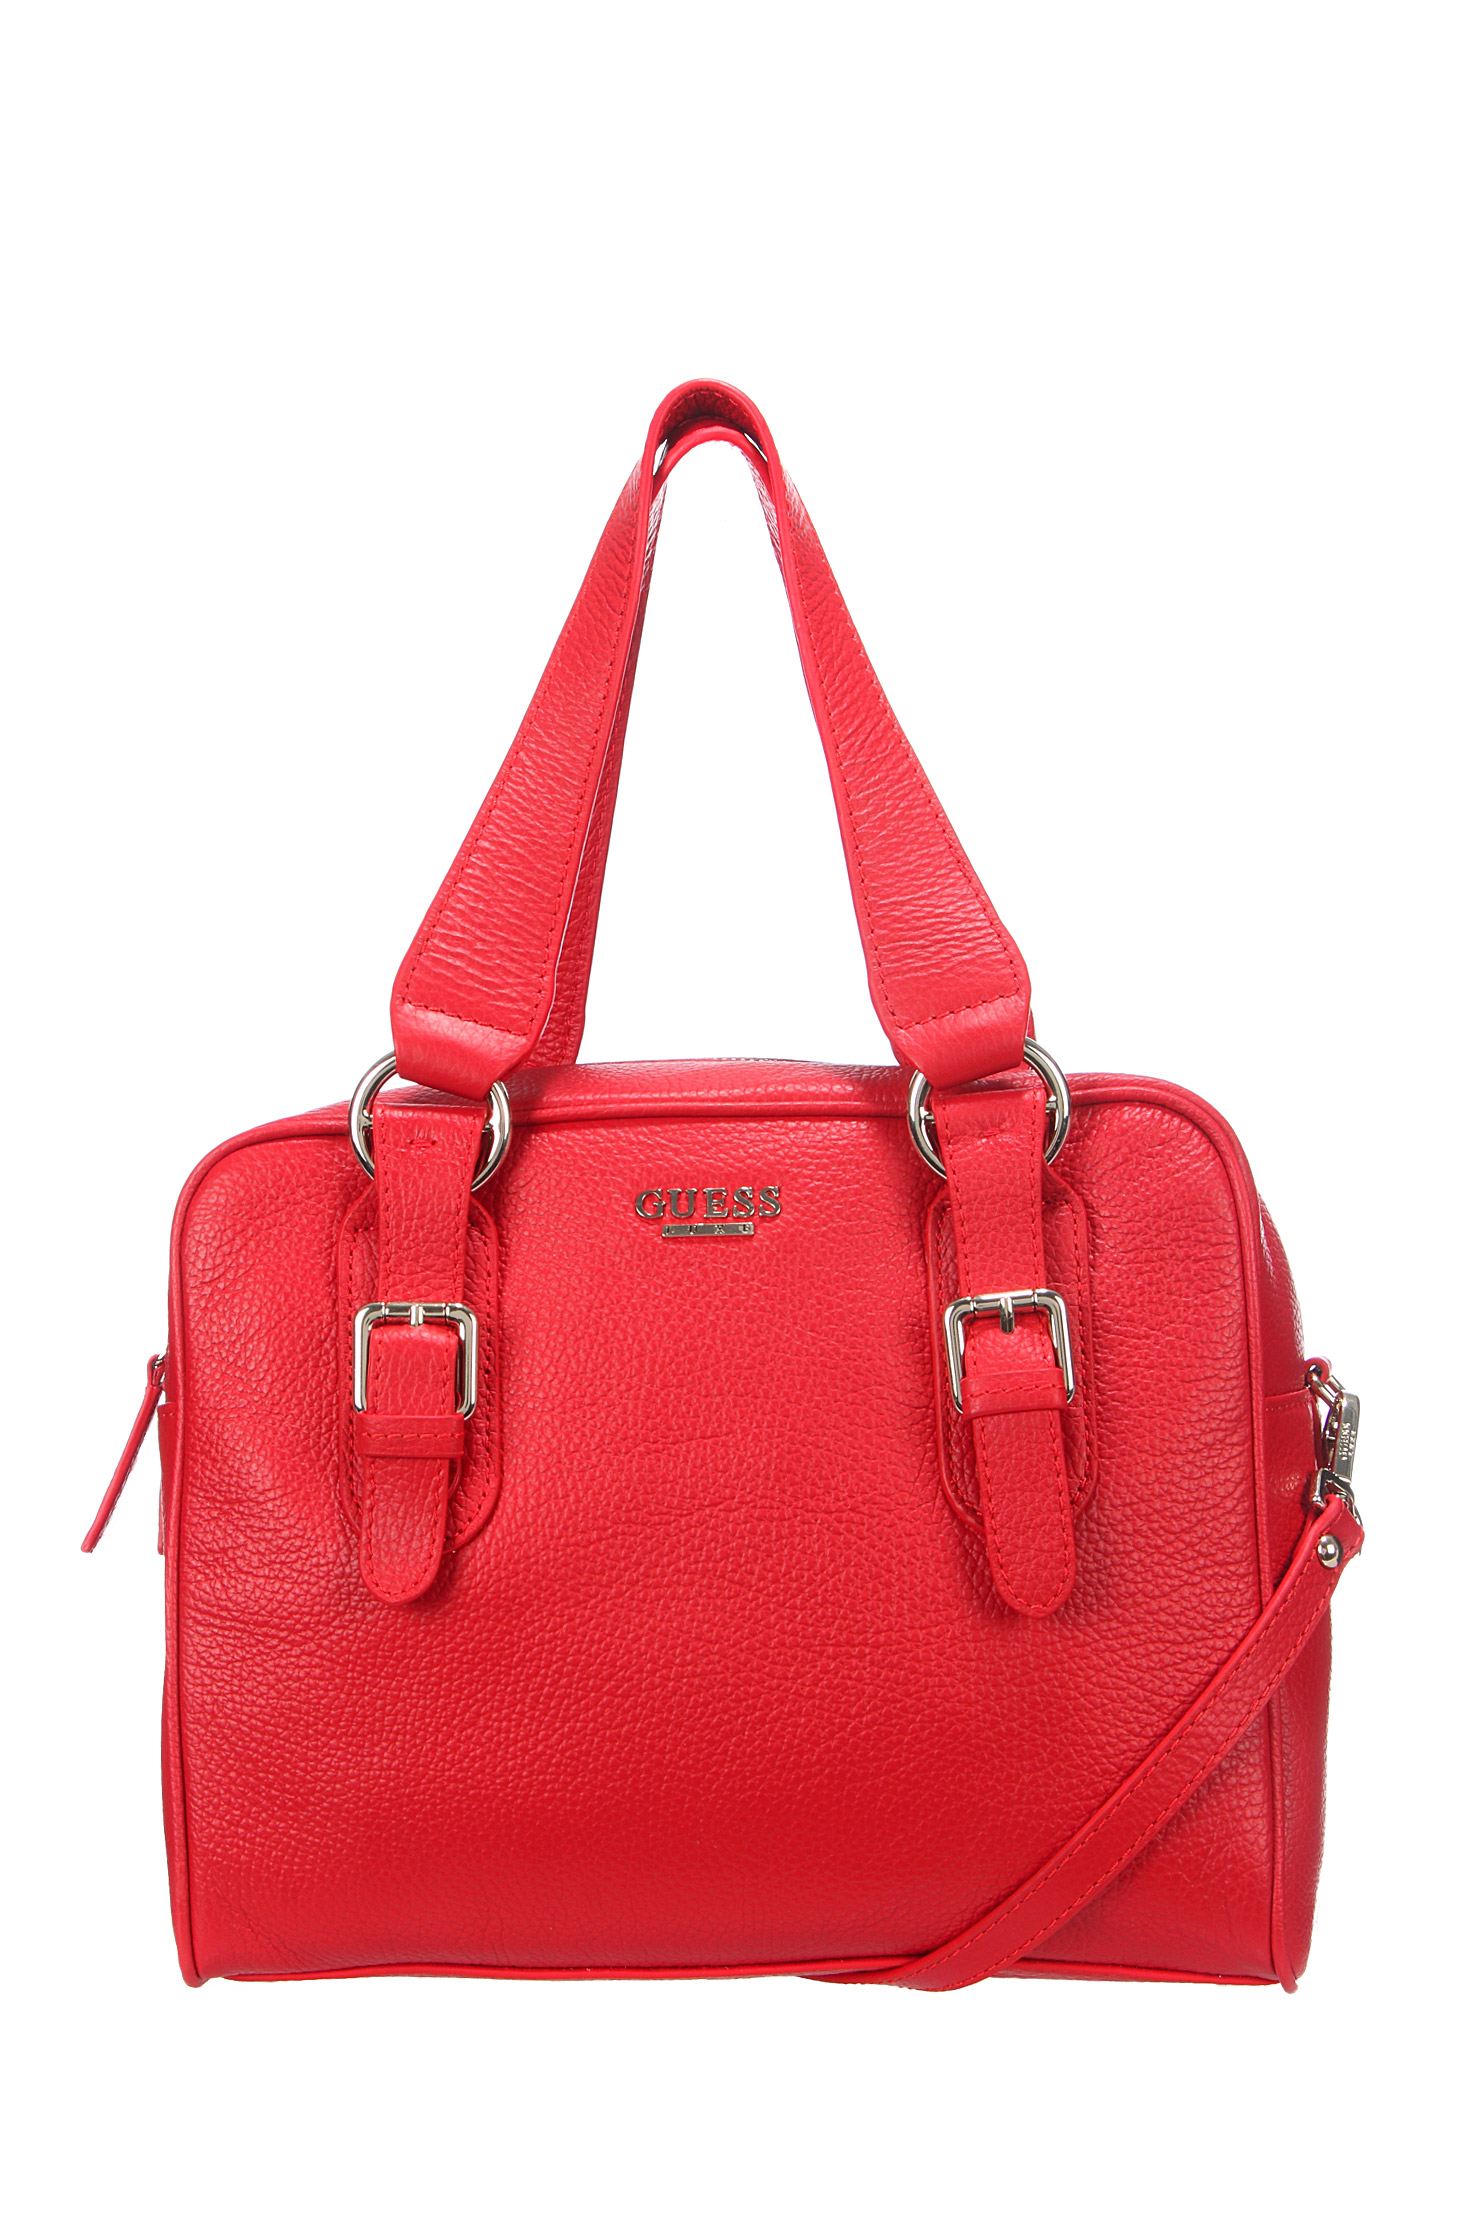 womens guess limelight handbag red by women leather